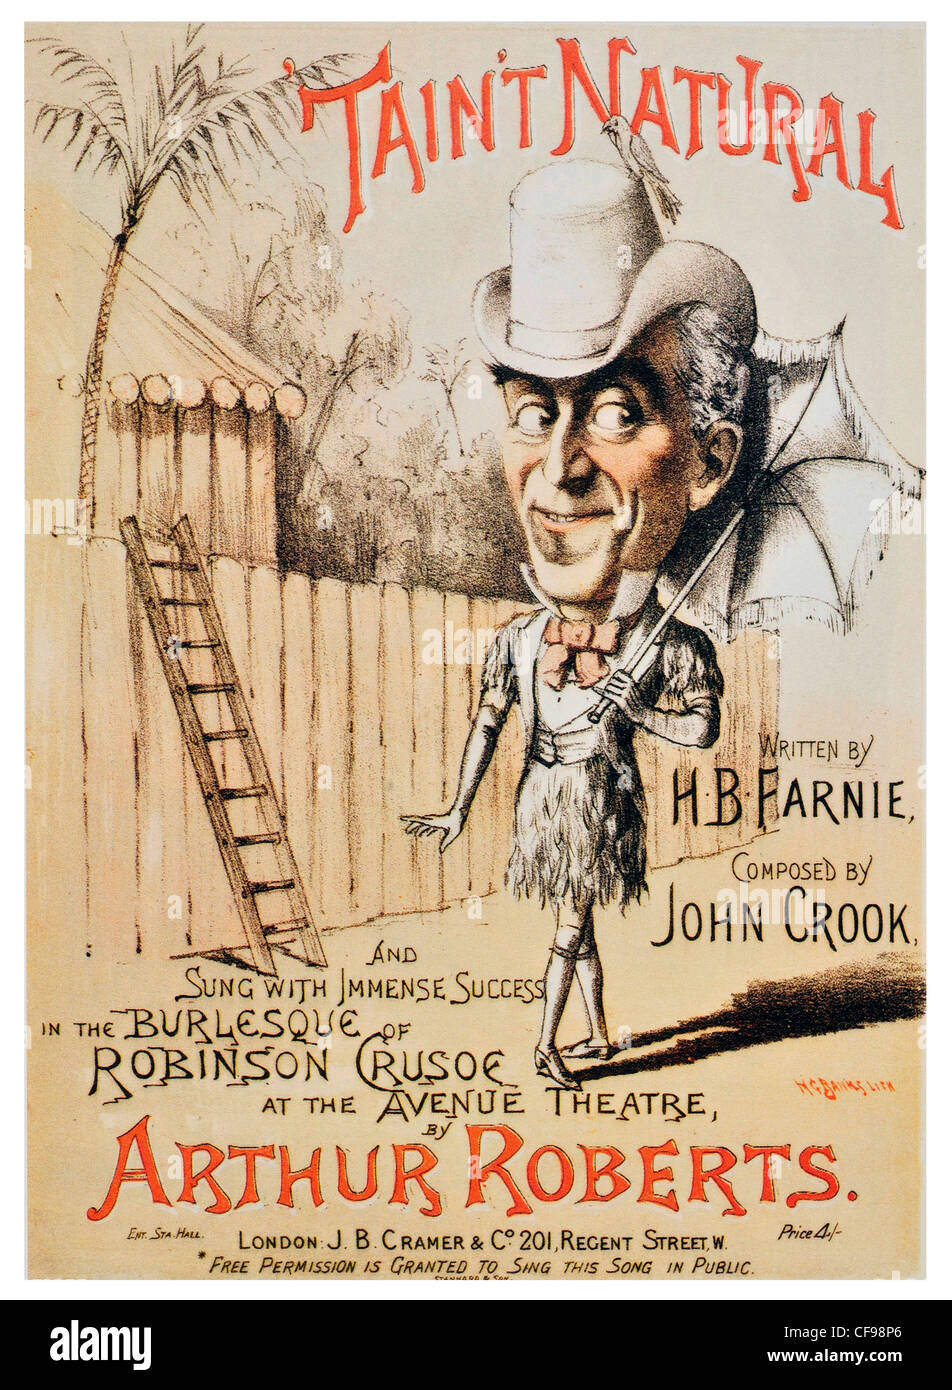 1886 Taint Natural Avenue Theatre by Arthur Roberts John Crook HB Farnie - Stock Image